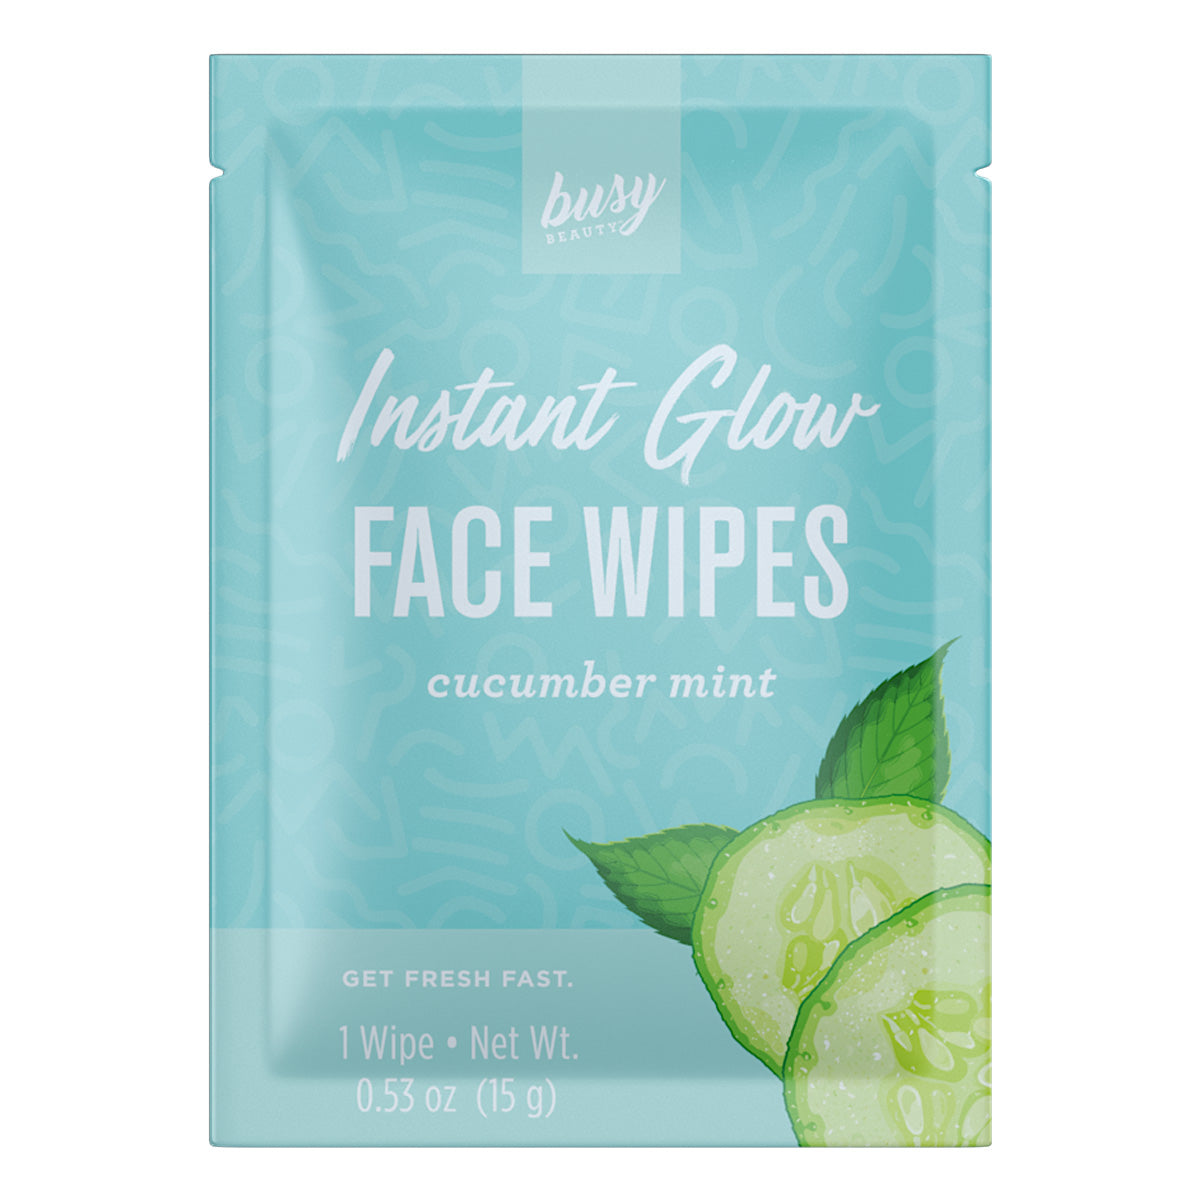 Busy Beauty Cucumber Mint Face Wipe - Travel PAKT